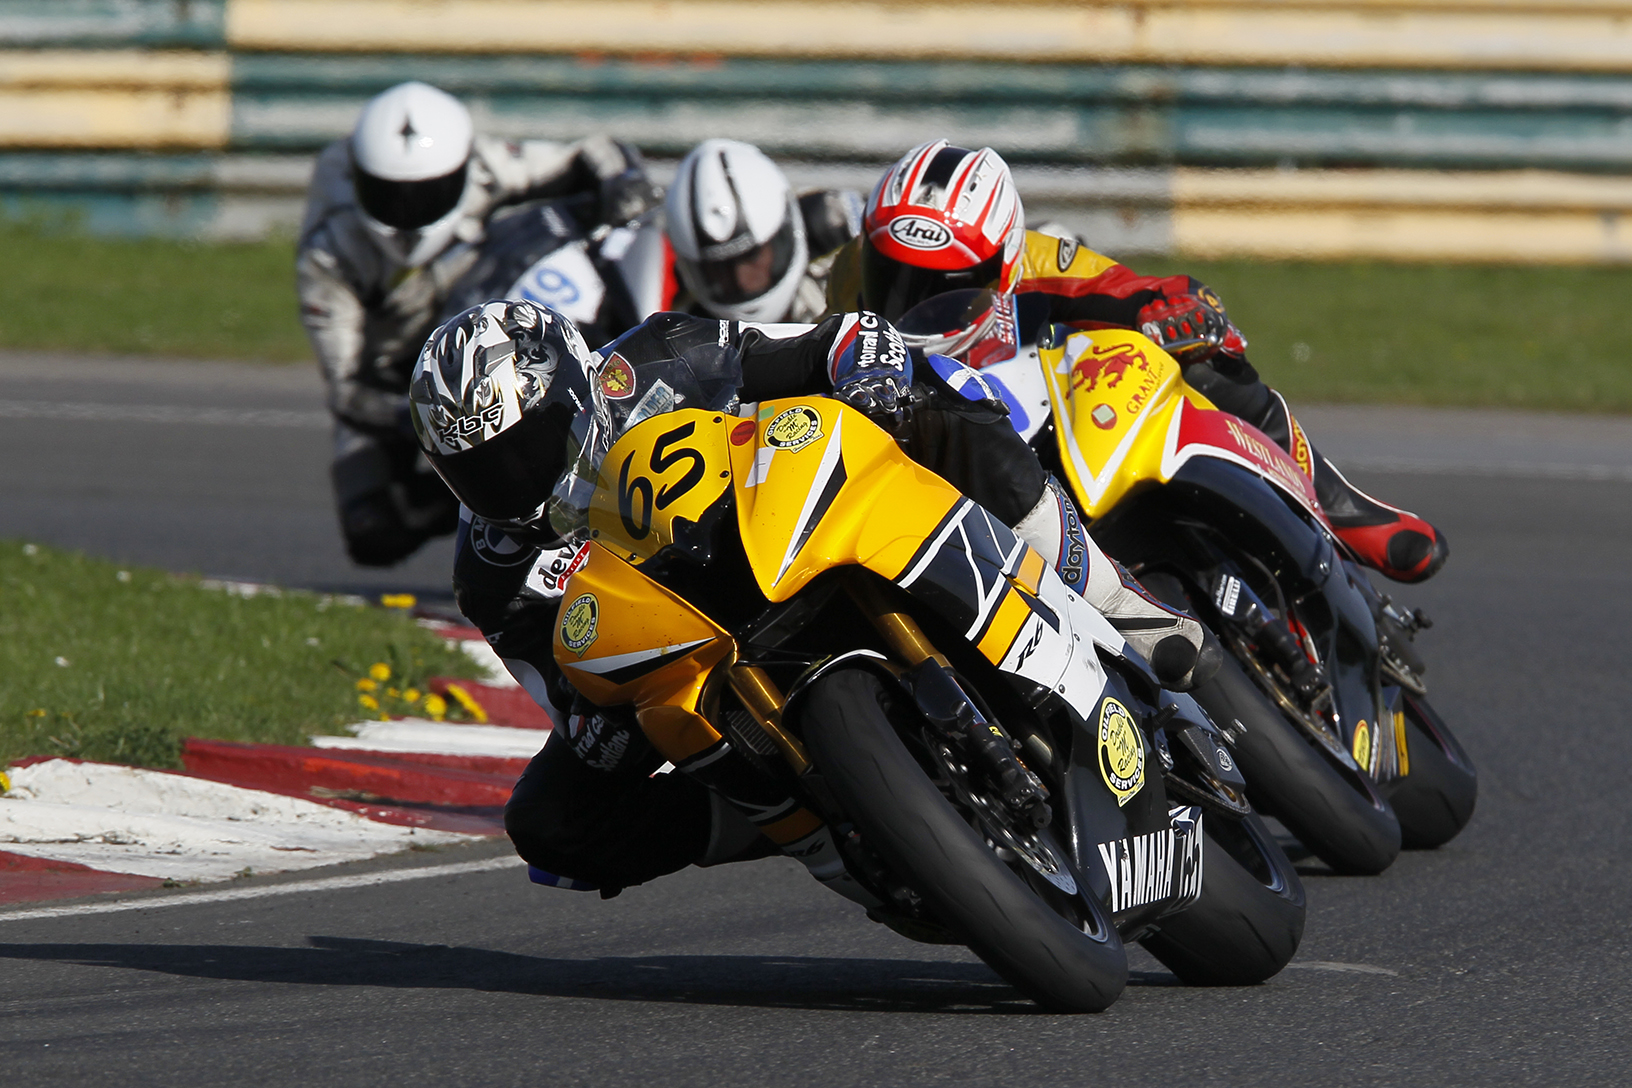 Dave Paton Motorcycle Racing on his way to victory at NEMCRC Croft meeting 2011